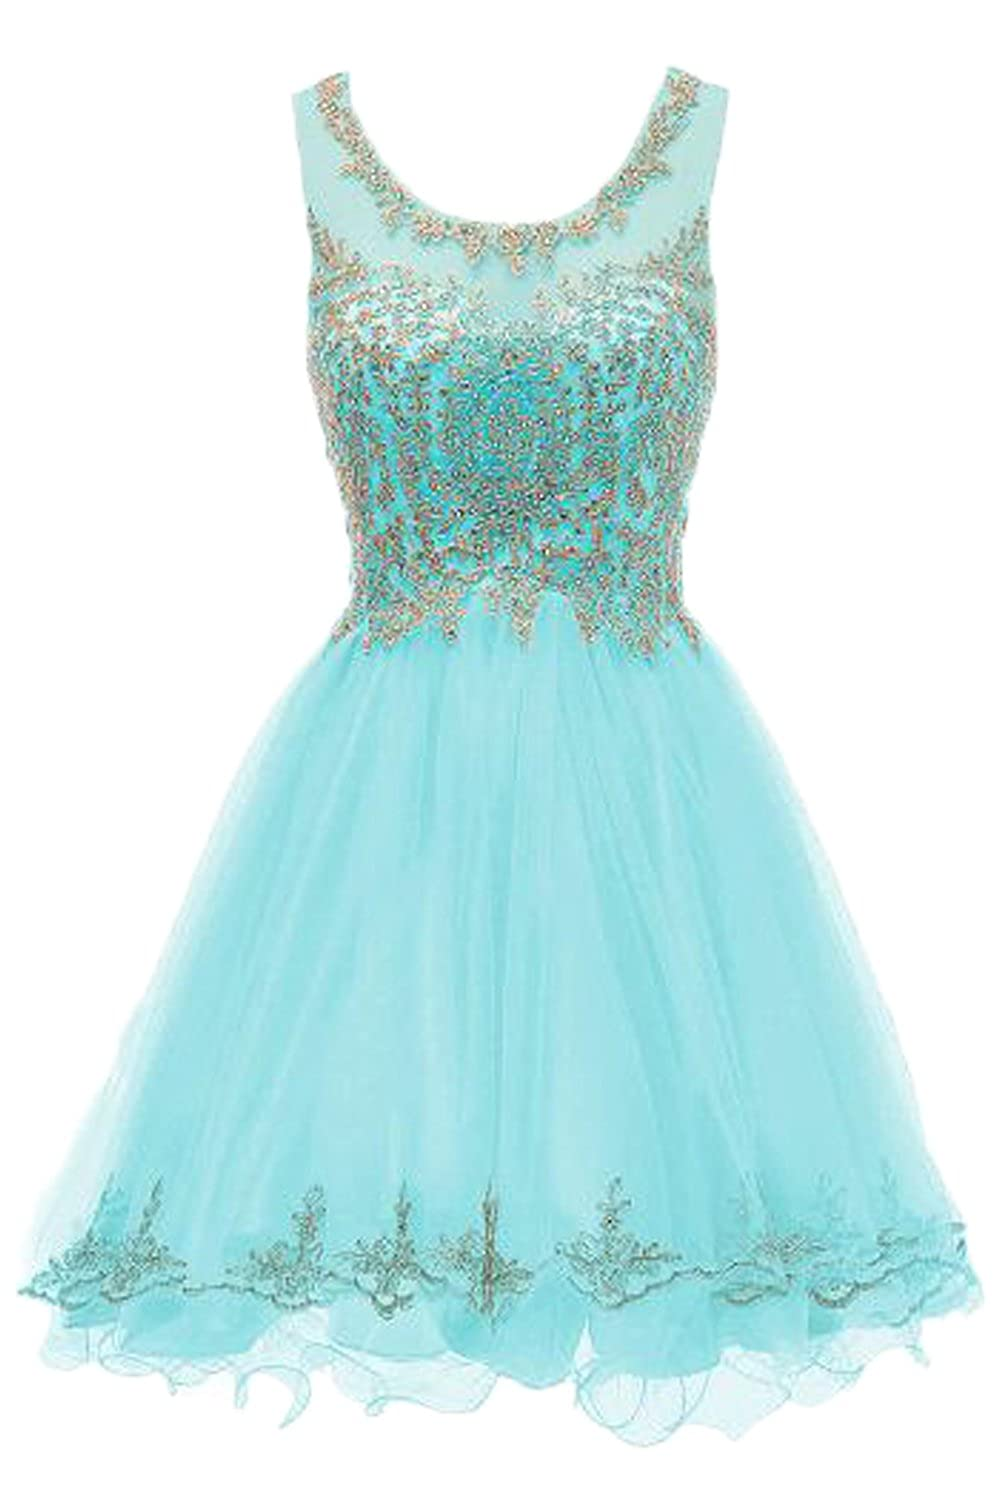 Turquoise Huifany Short gold Lace Prom Homecoming Dresses Appliques Beads Prom Party Gowns